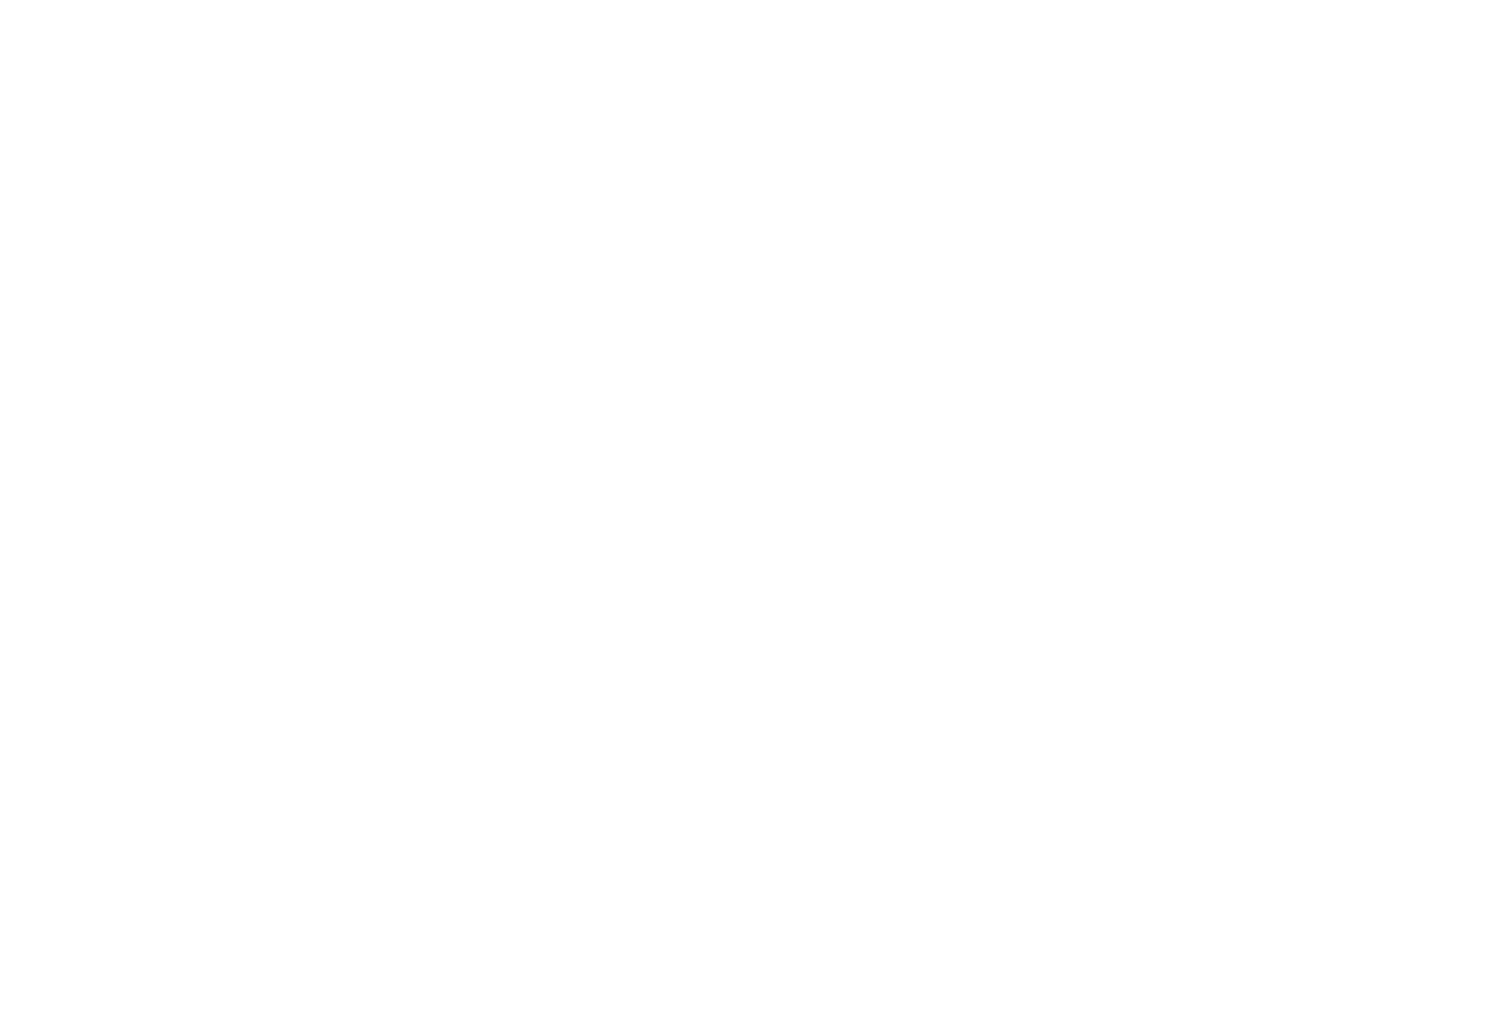 Rudy's Steakhouse